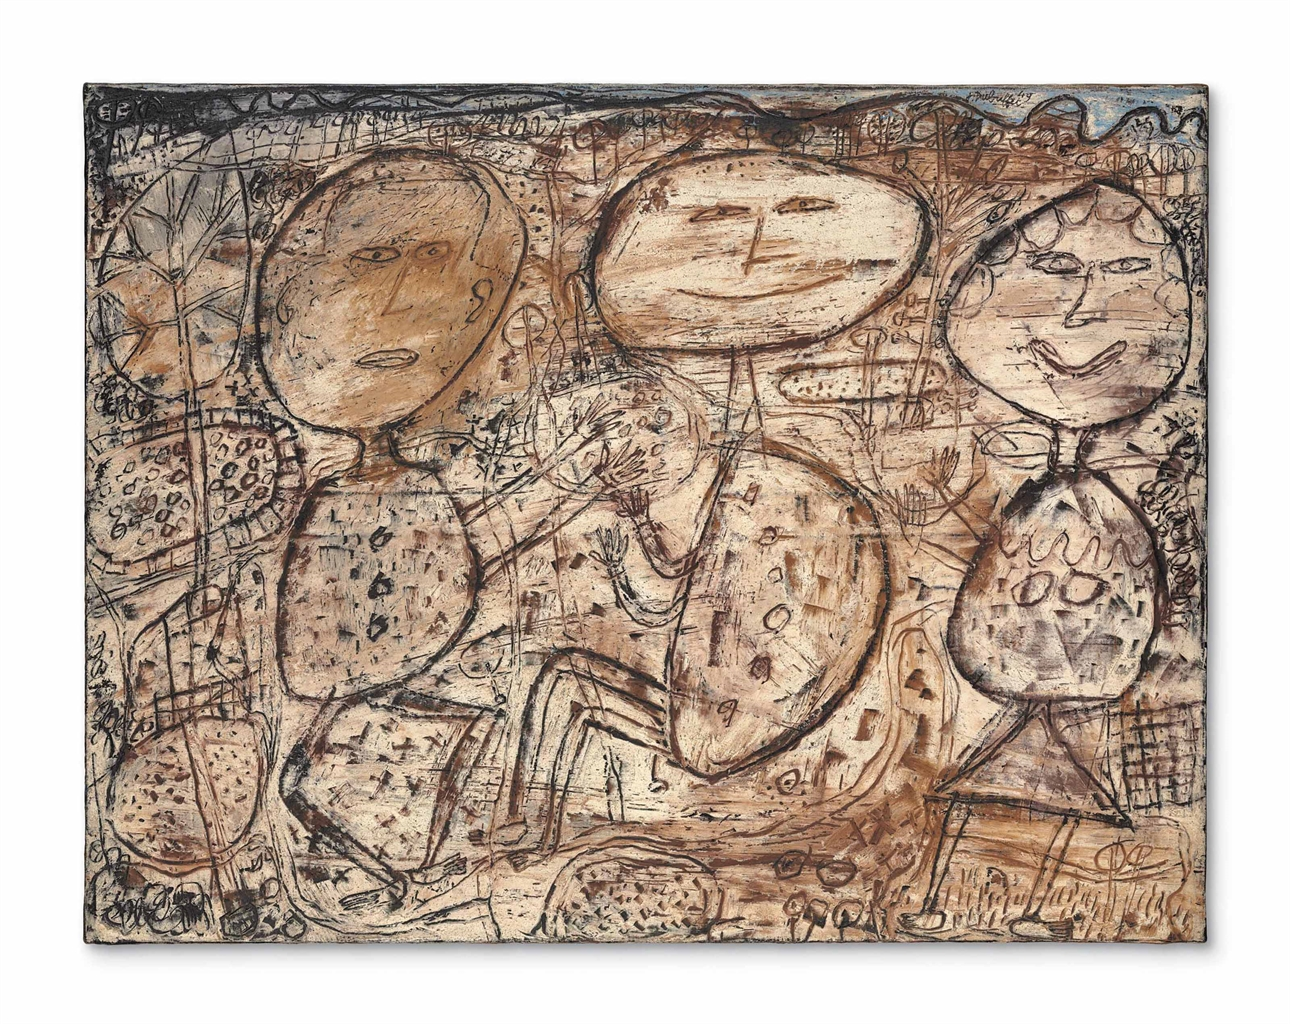 Jean Dubuffet-La Vie Agreste (The Rural Life)-1949